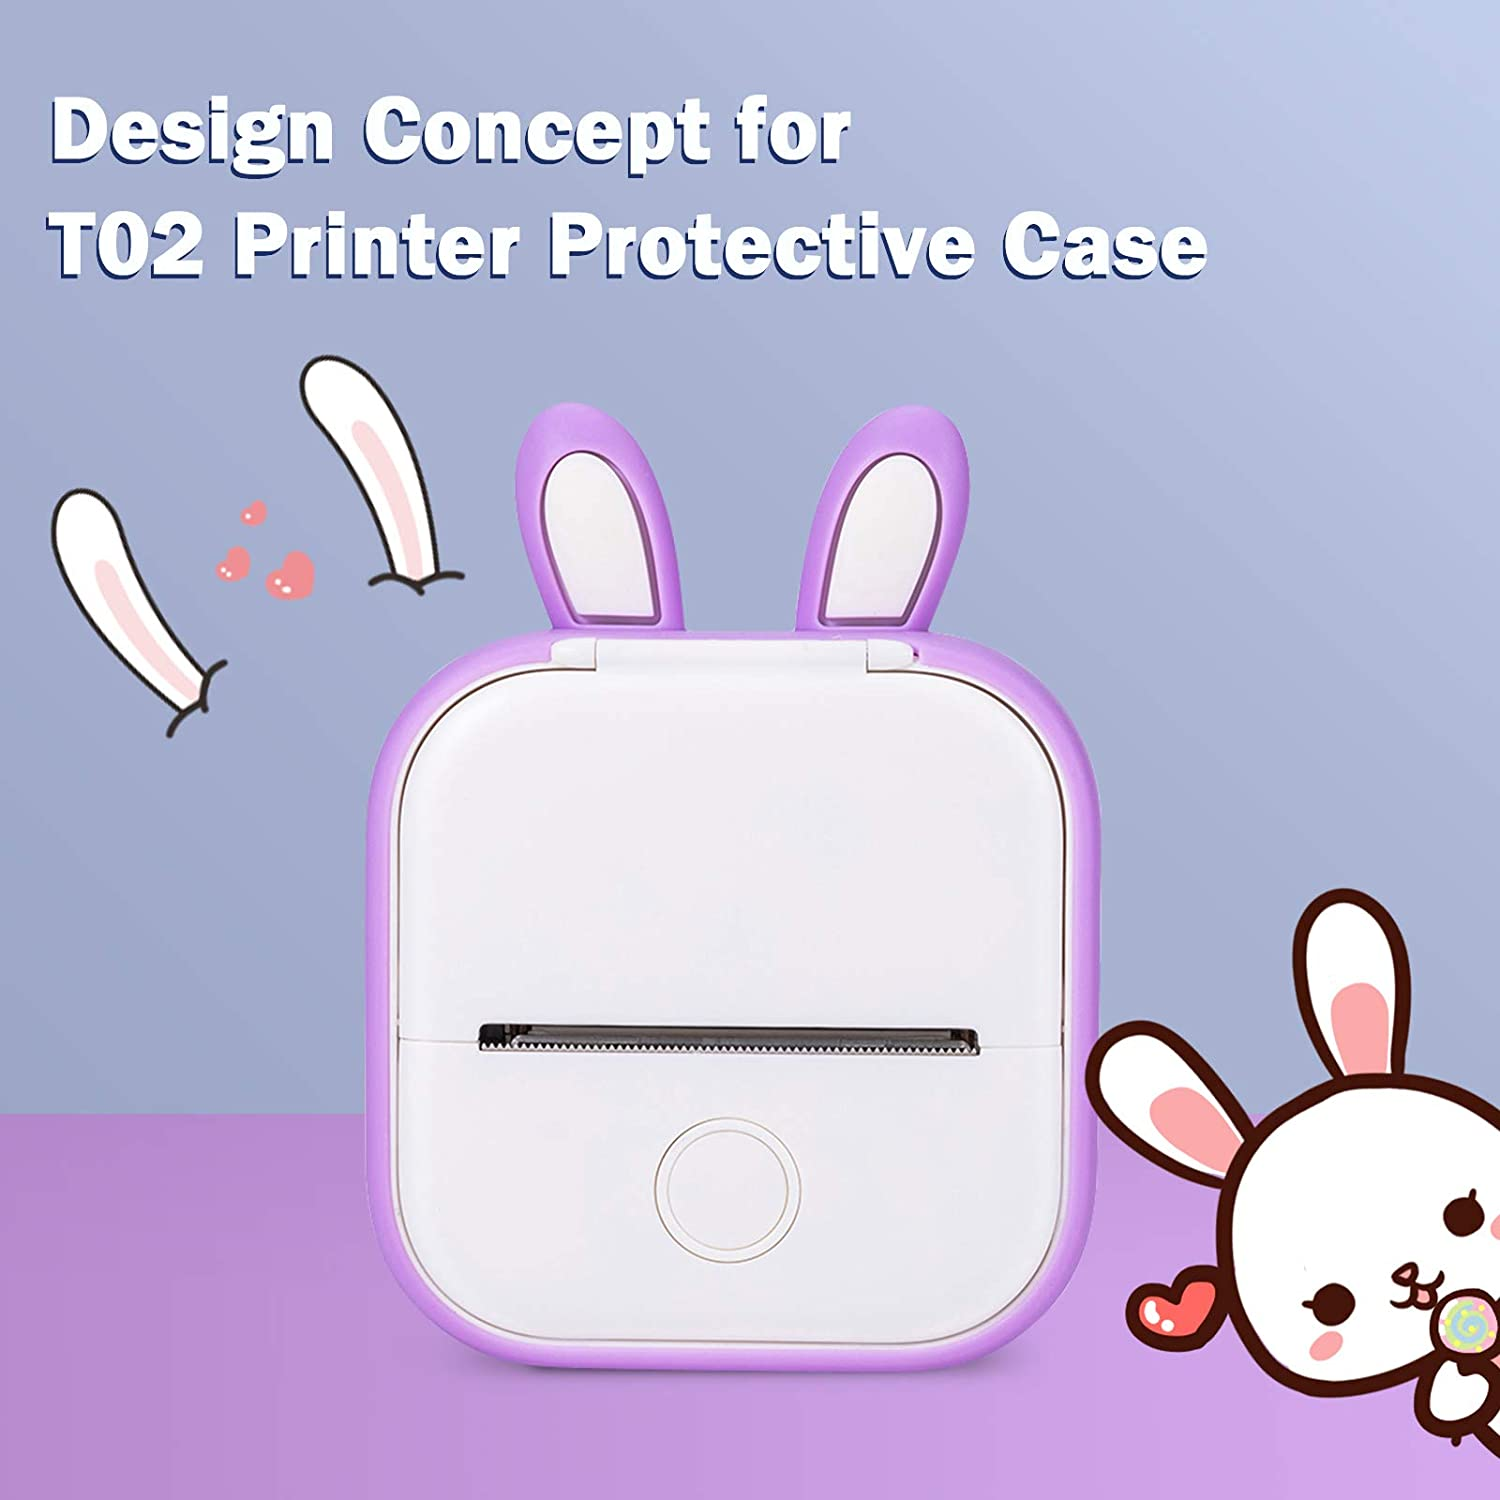 Memoking T02 Protective Case-Bunny Ears Shape Soft Silicone BPA-Free Cute Design Printer Cover, Compatible with T02 Mini Bluetooth Wireless Portable Mobile Pocket Printer, Purple